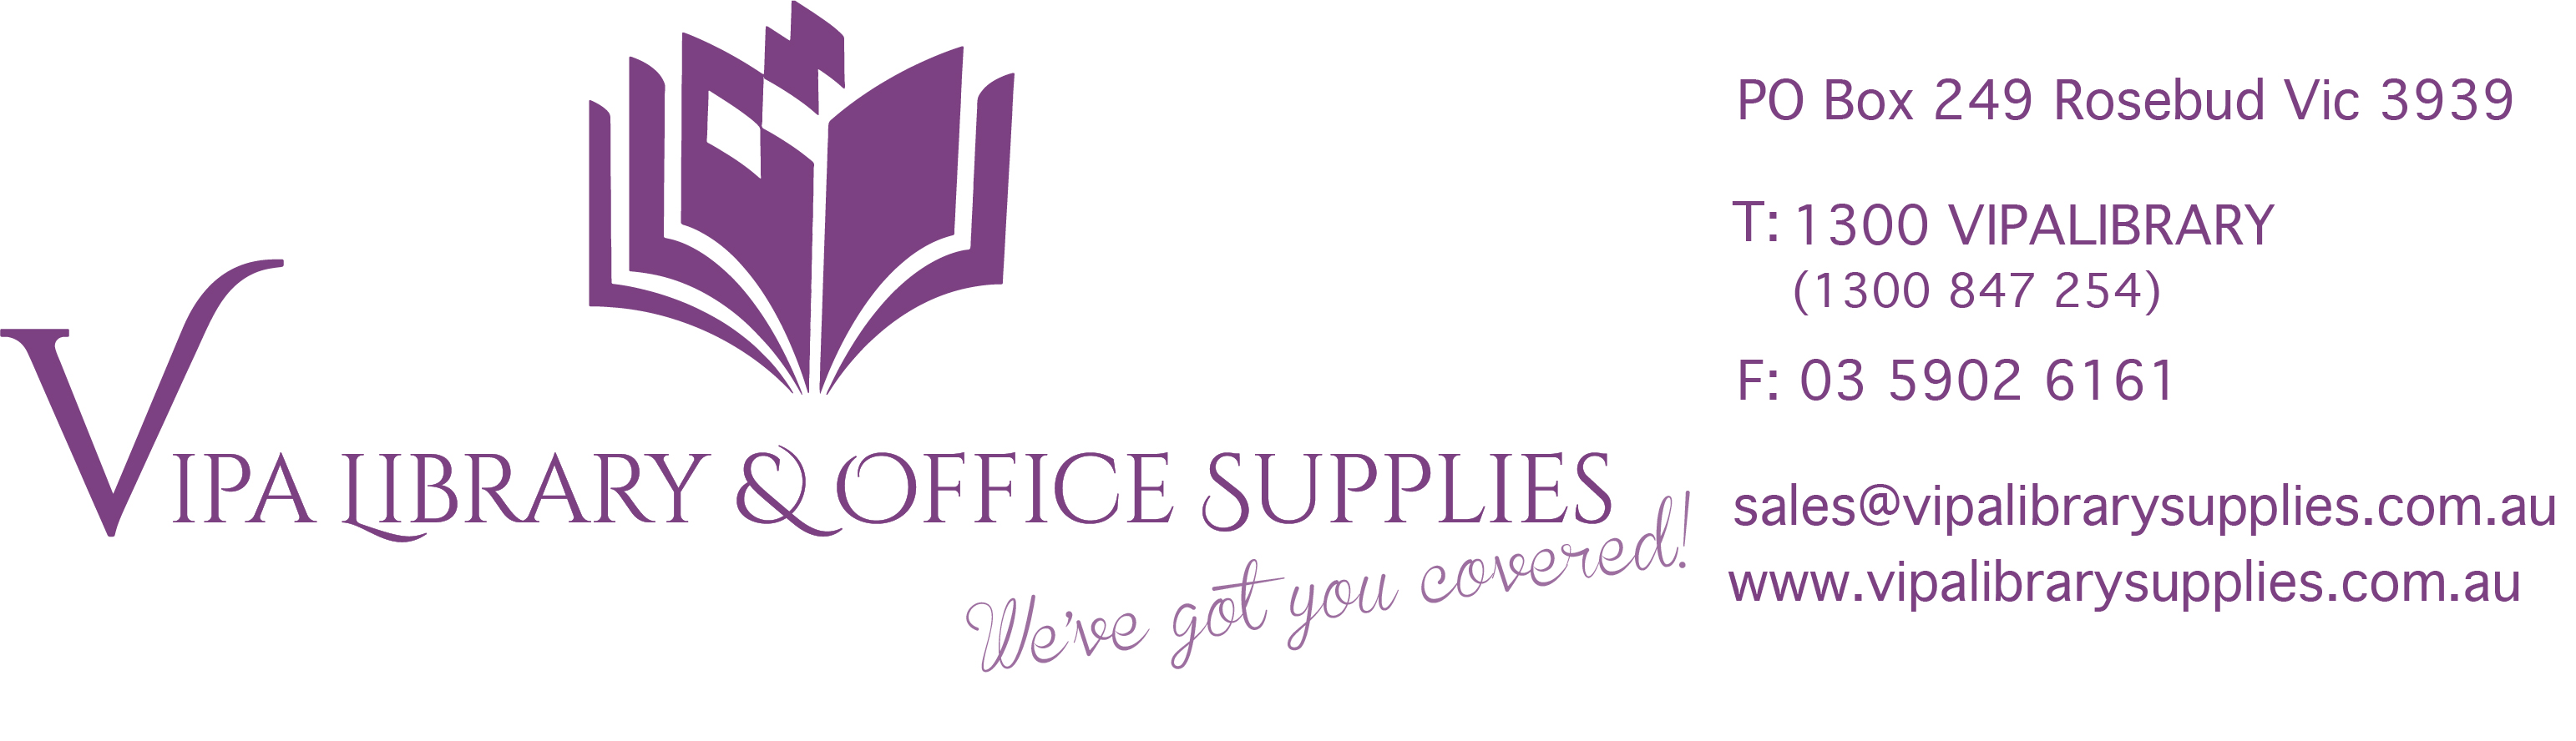 Vipa Library & Office Supplies